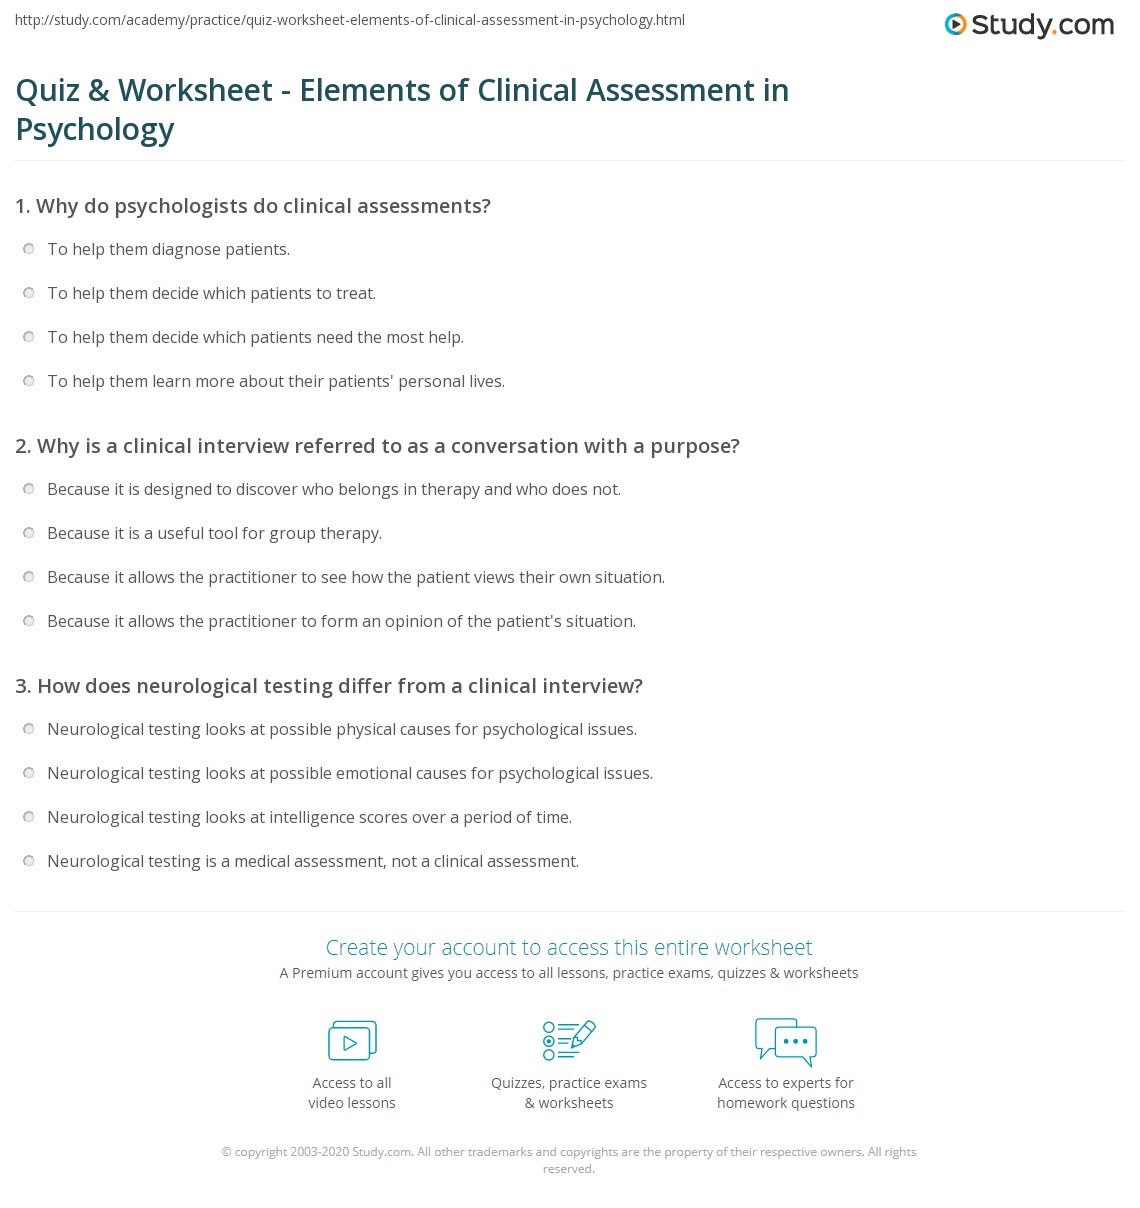 quiz & worksheet - elements of clinical assessment in psychology